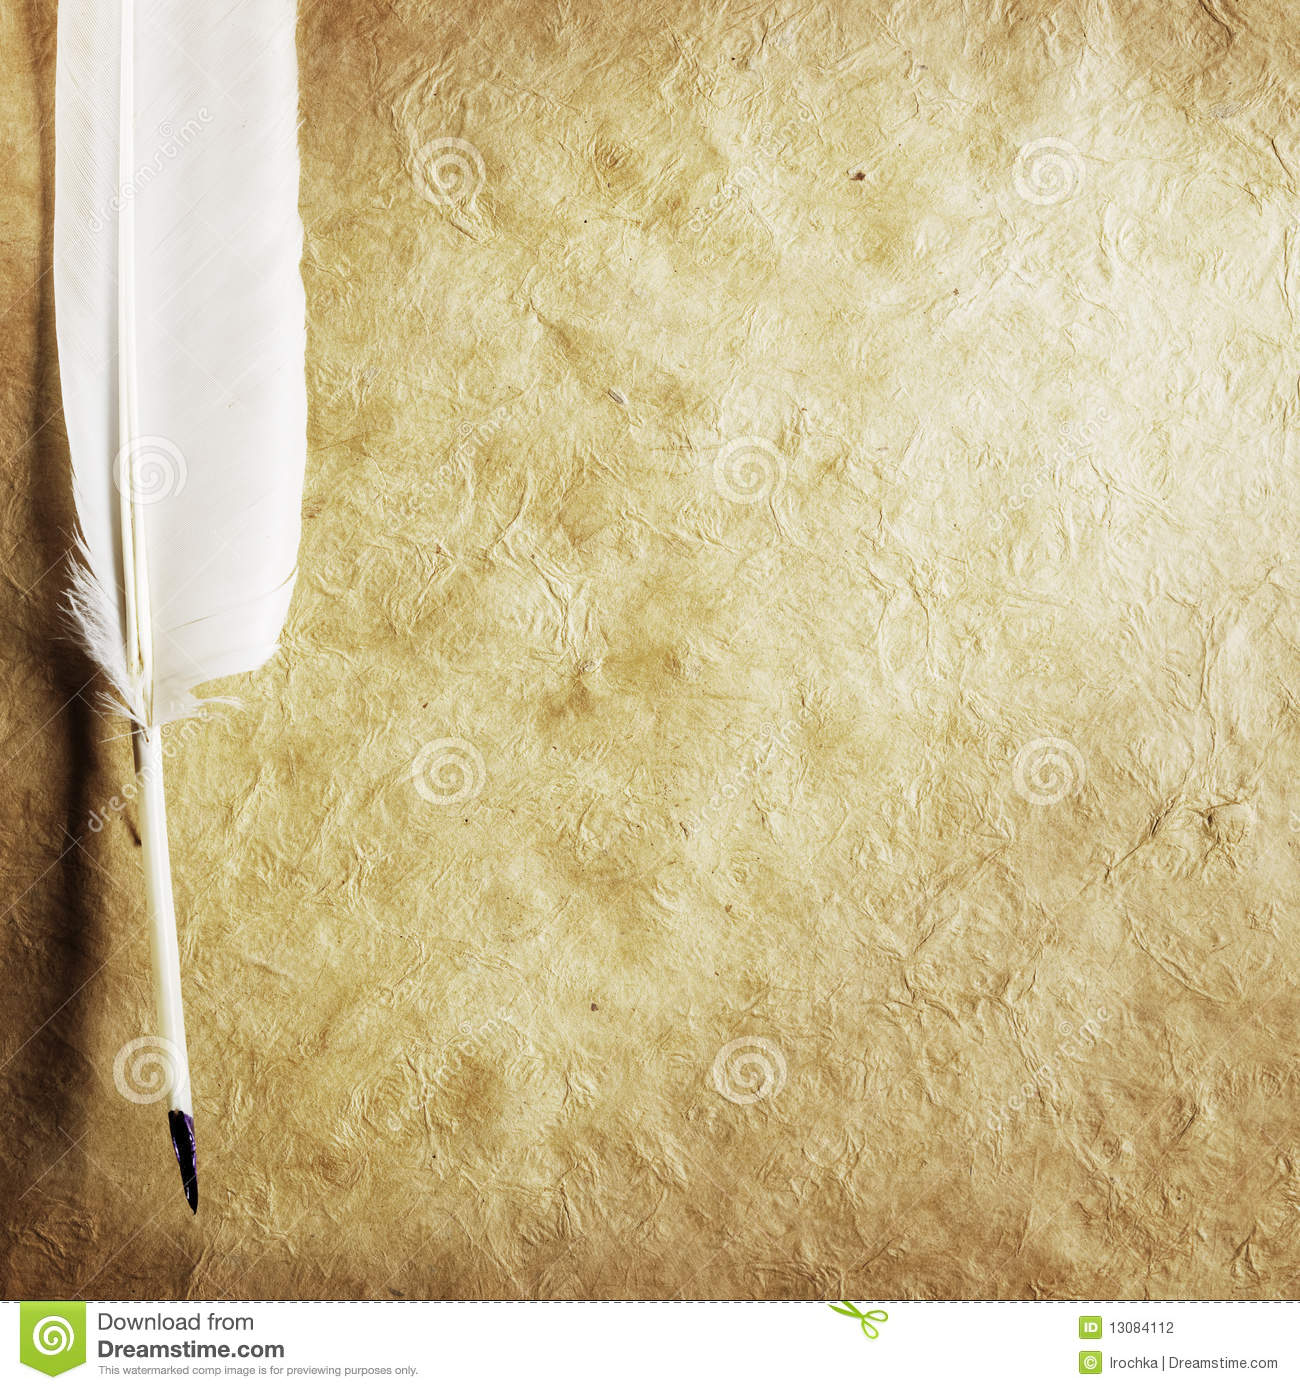 Quill And Parchment Wallpaper | www.imgkid.com - The Image ...